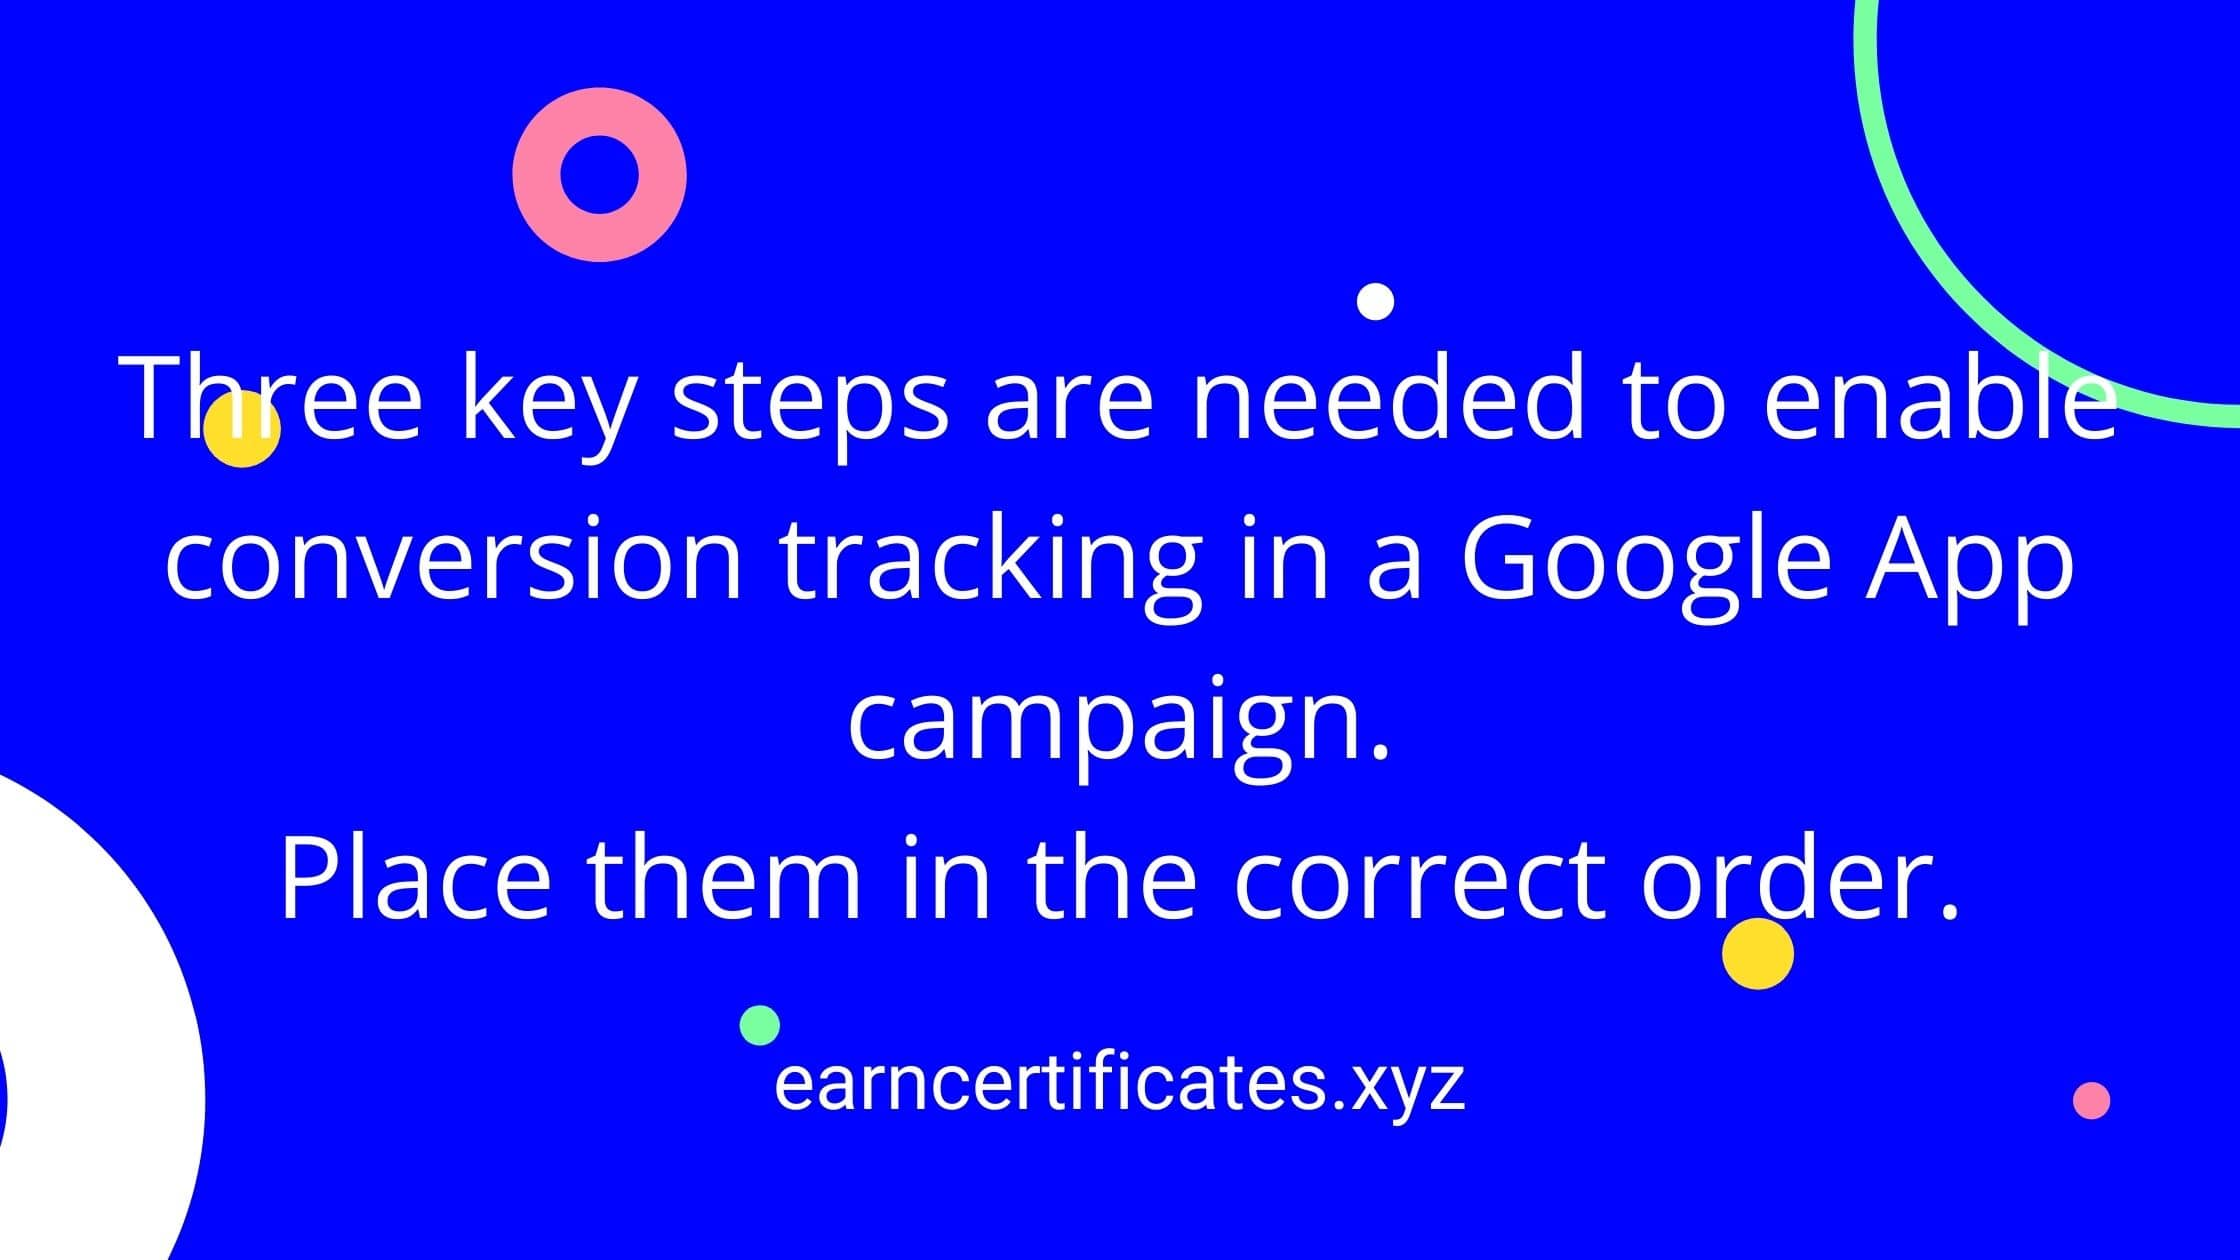 Three key steps are needed to enable conversion tracking in a Google App campaign. Place them in the correct order.